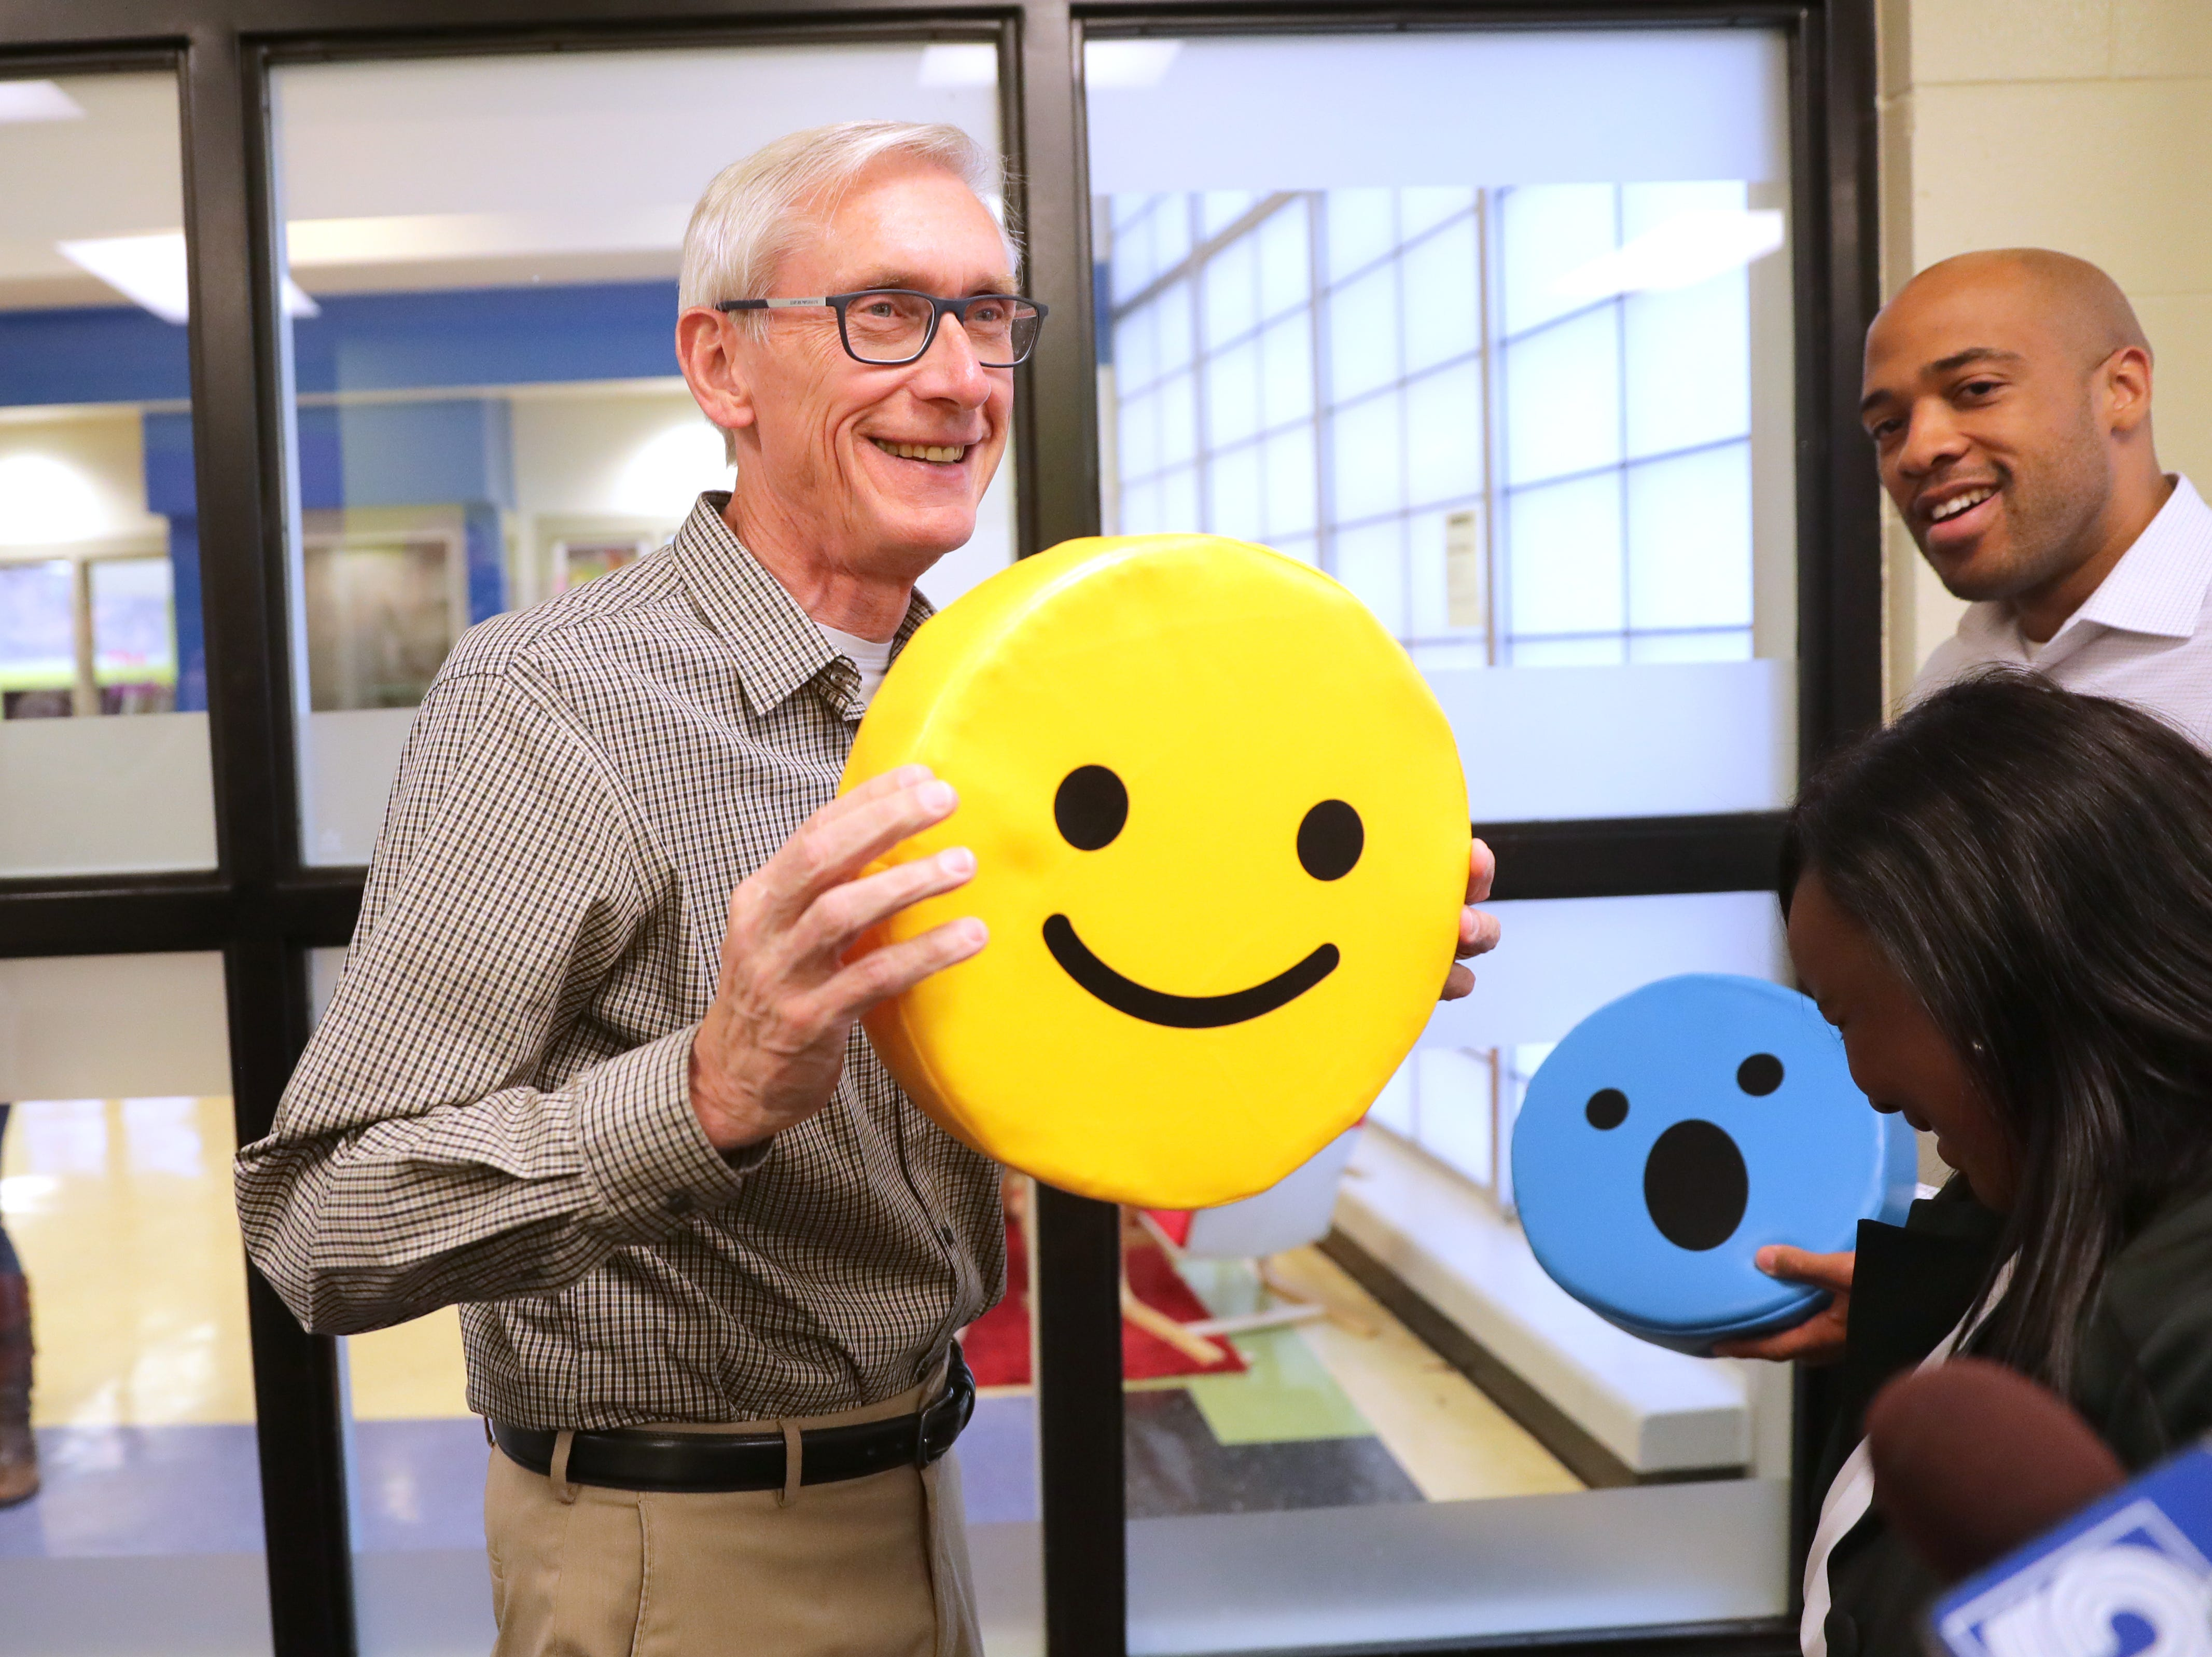 Gov.-elect Tony Evers jokingly hold a smiley emoji pillow to reflect how he's feeling after winning the election as he and Lt. Gov.-elect Mandela Barnes visited the Boys & Girls Club of Dane County in Madison after they were elected Tuesday.